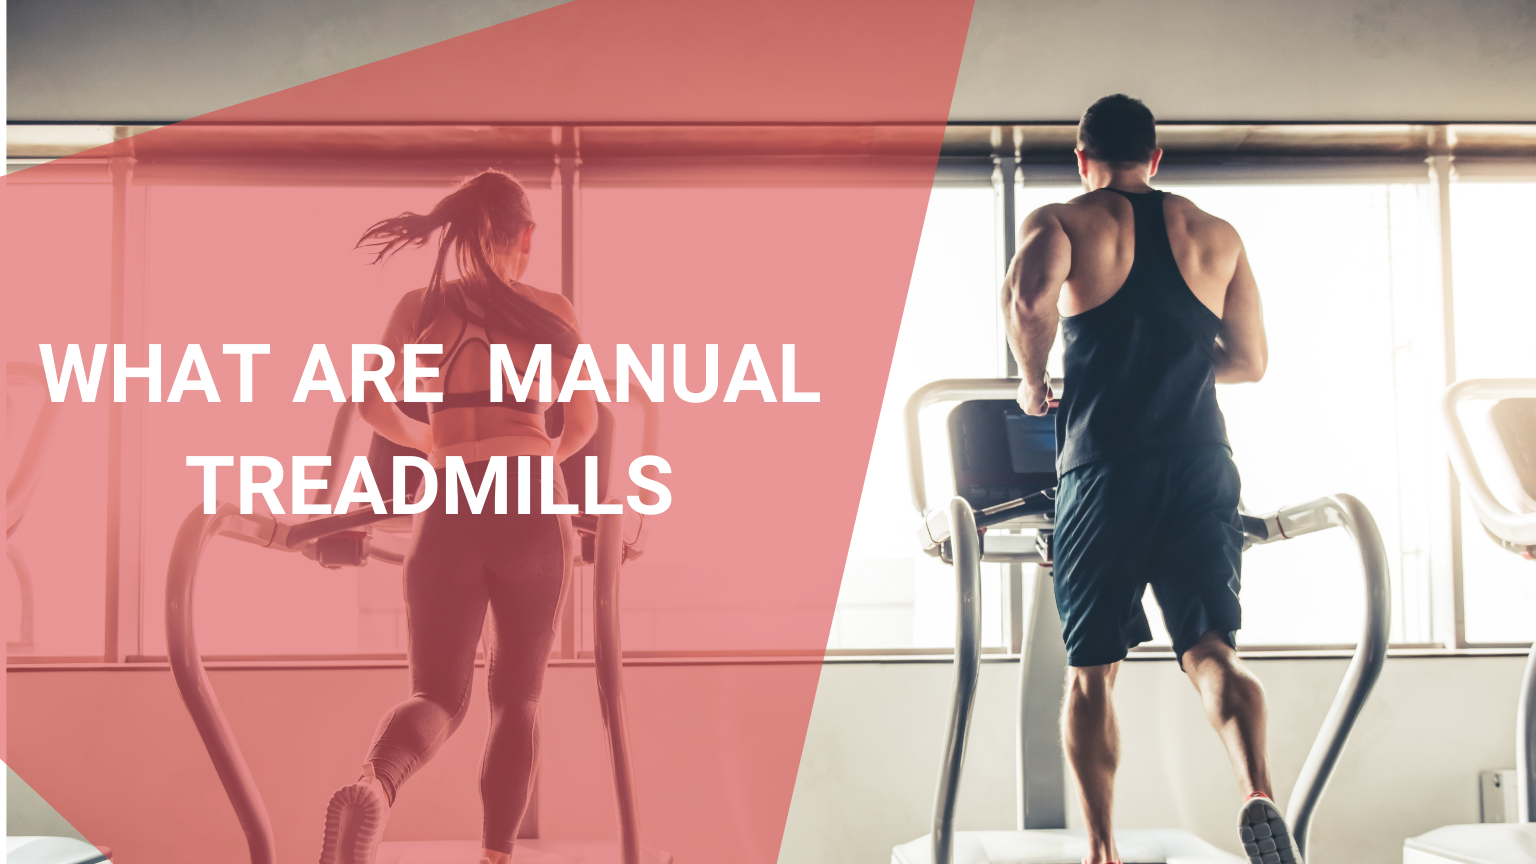 What are Manual Treadmills